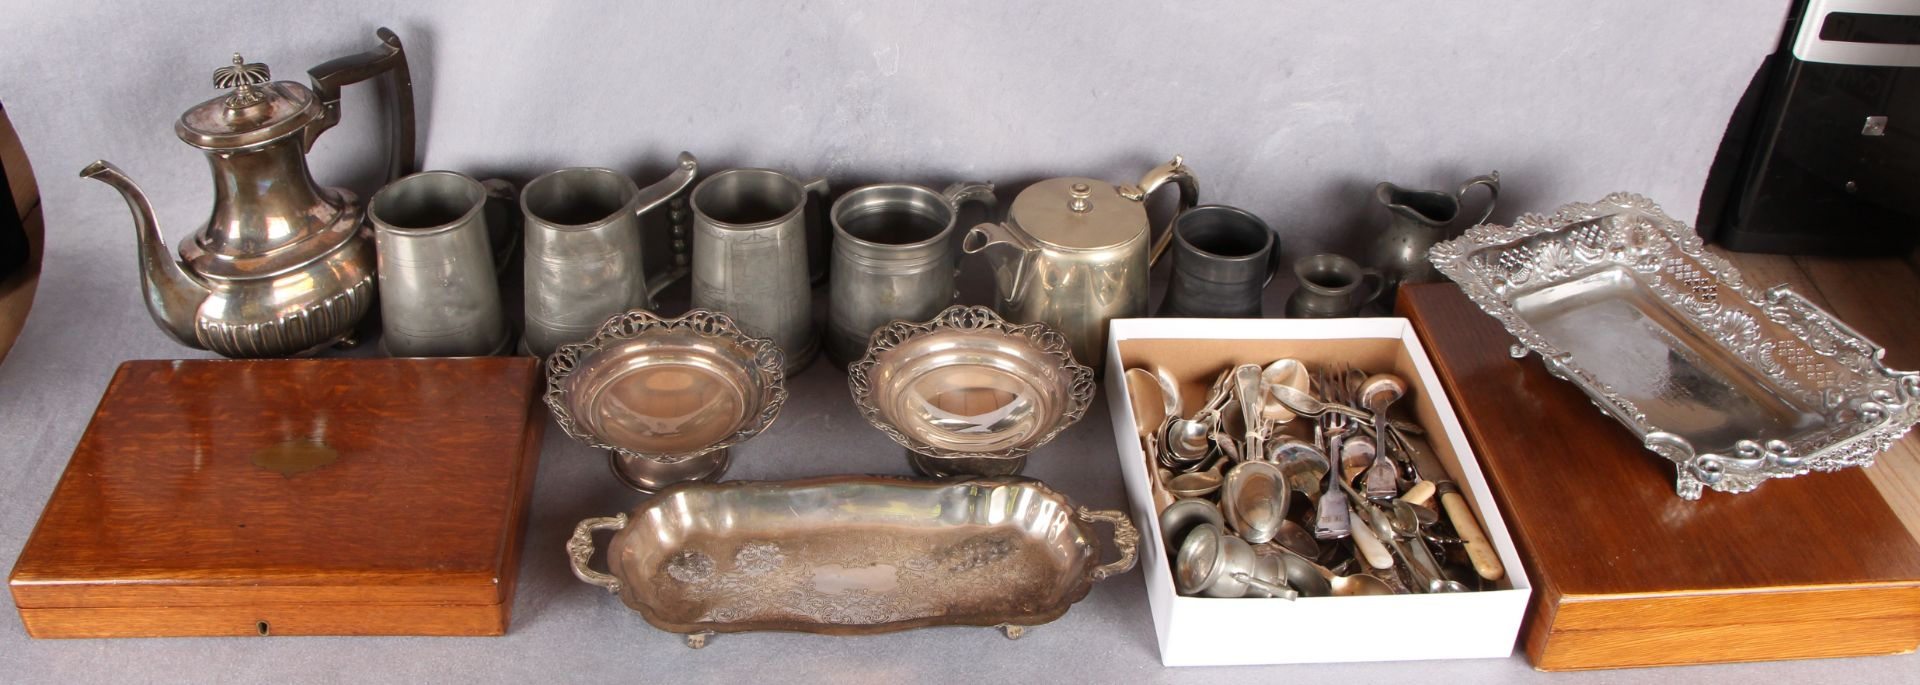 Lot 2 - A quantity of plated wares,